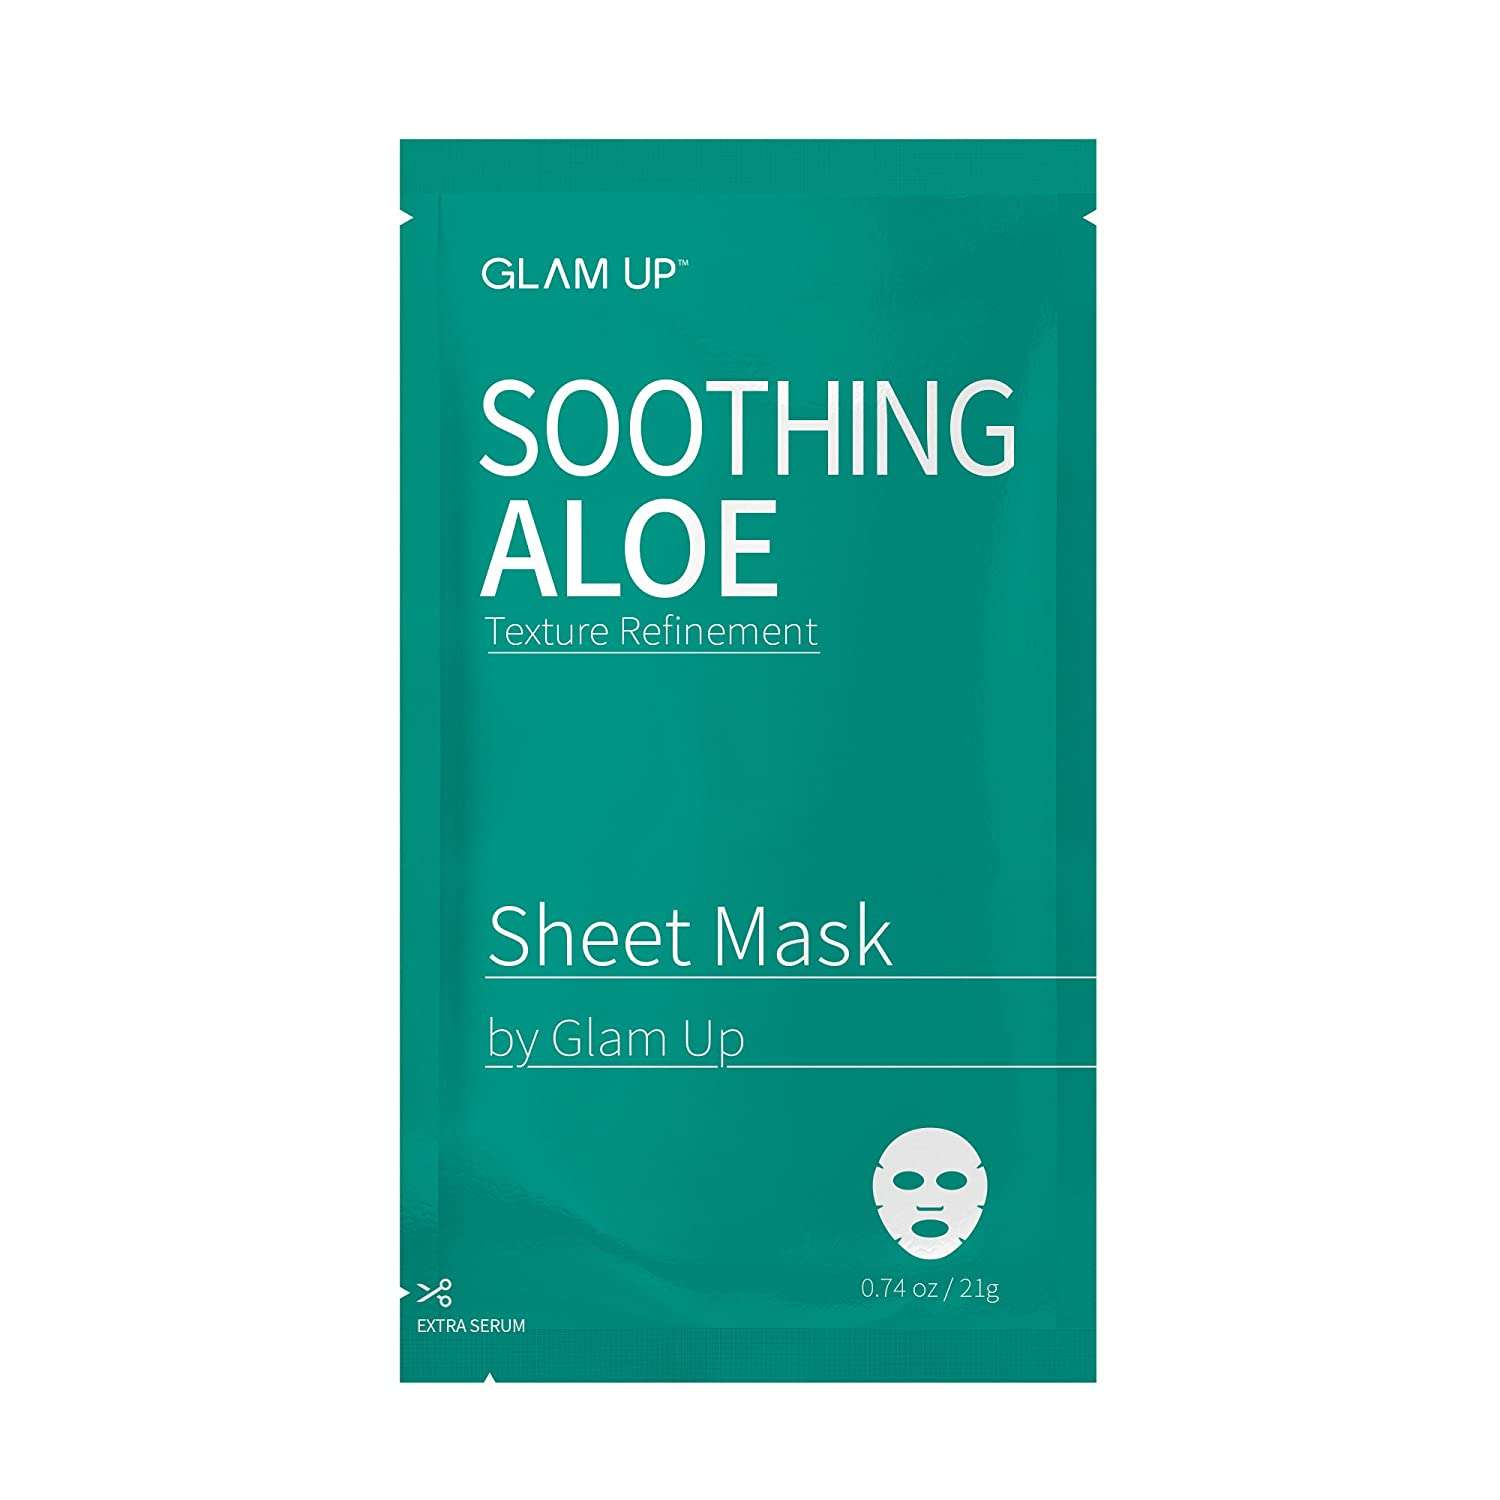 Sheet mask by glam up BTS Soothing Aloe - Replenishing, Soothing Damaged Skin Nature made Freshly packed Daily Skin Therapy Original K-Beauty Recipe 1ea